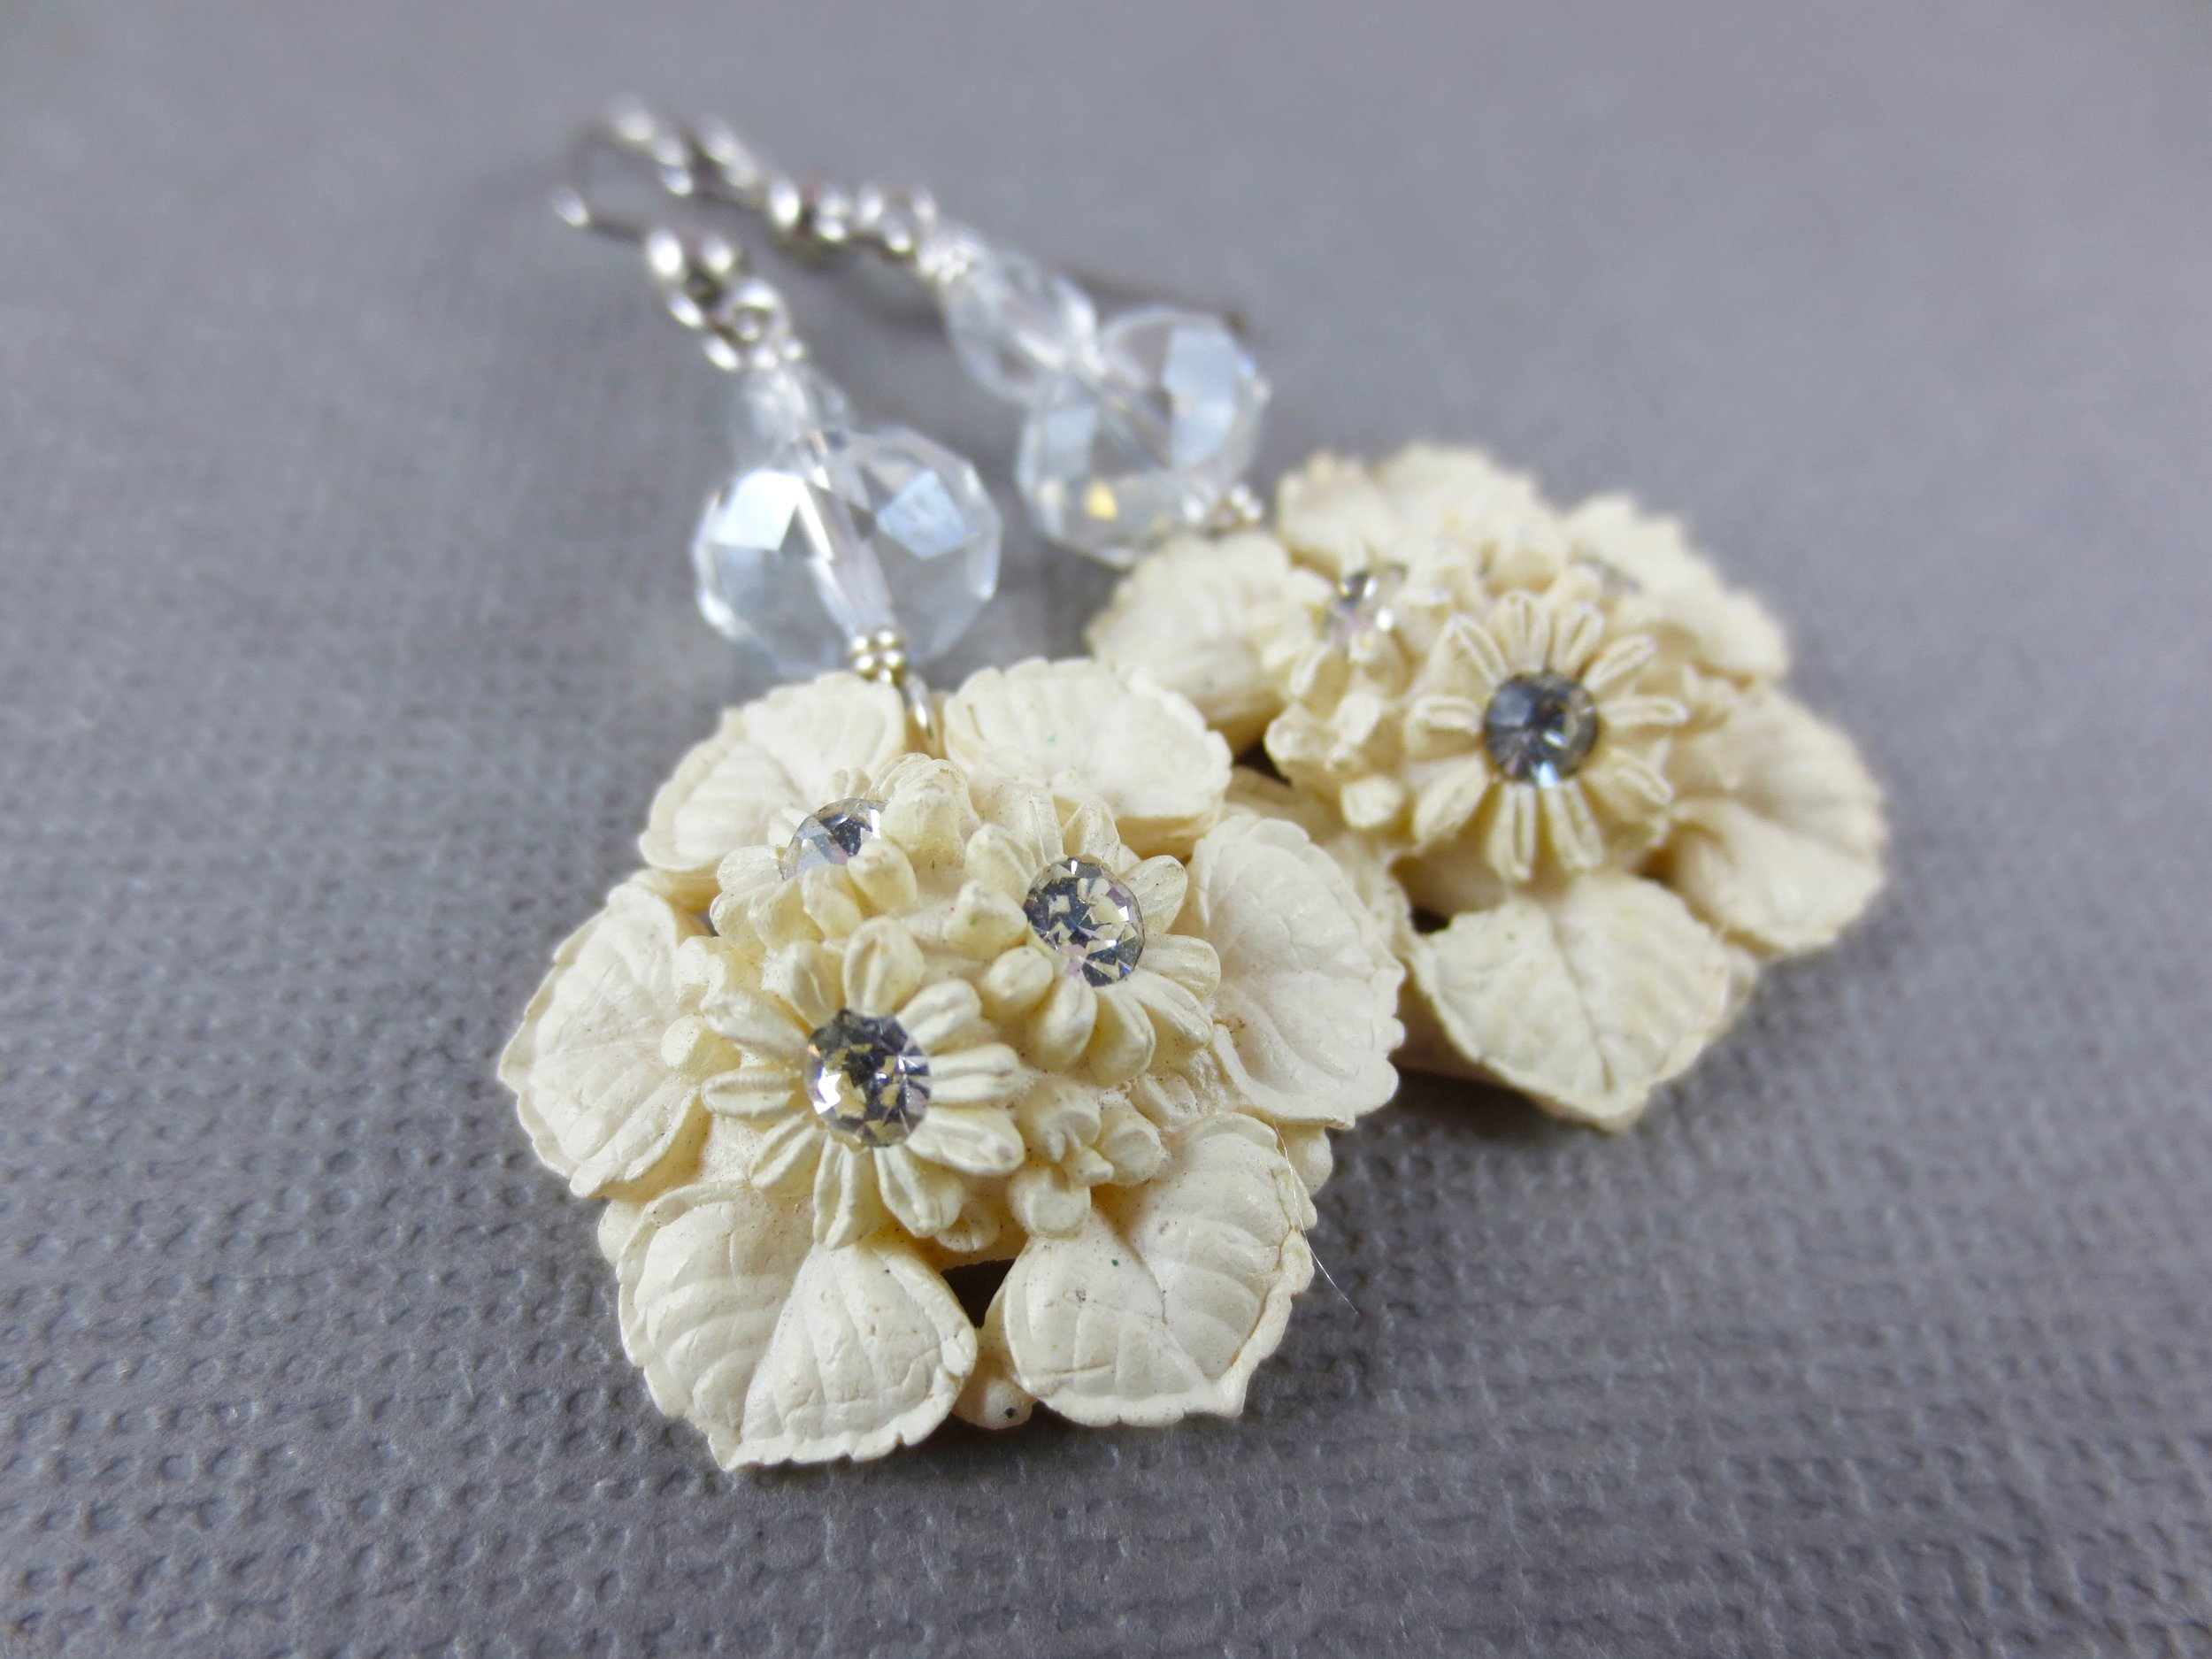 Off-white flower earrings with rhinestone accents